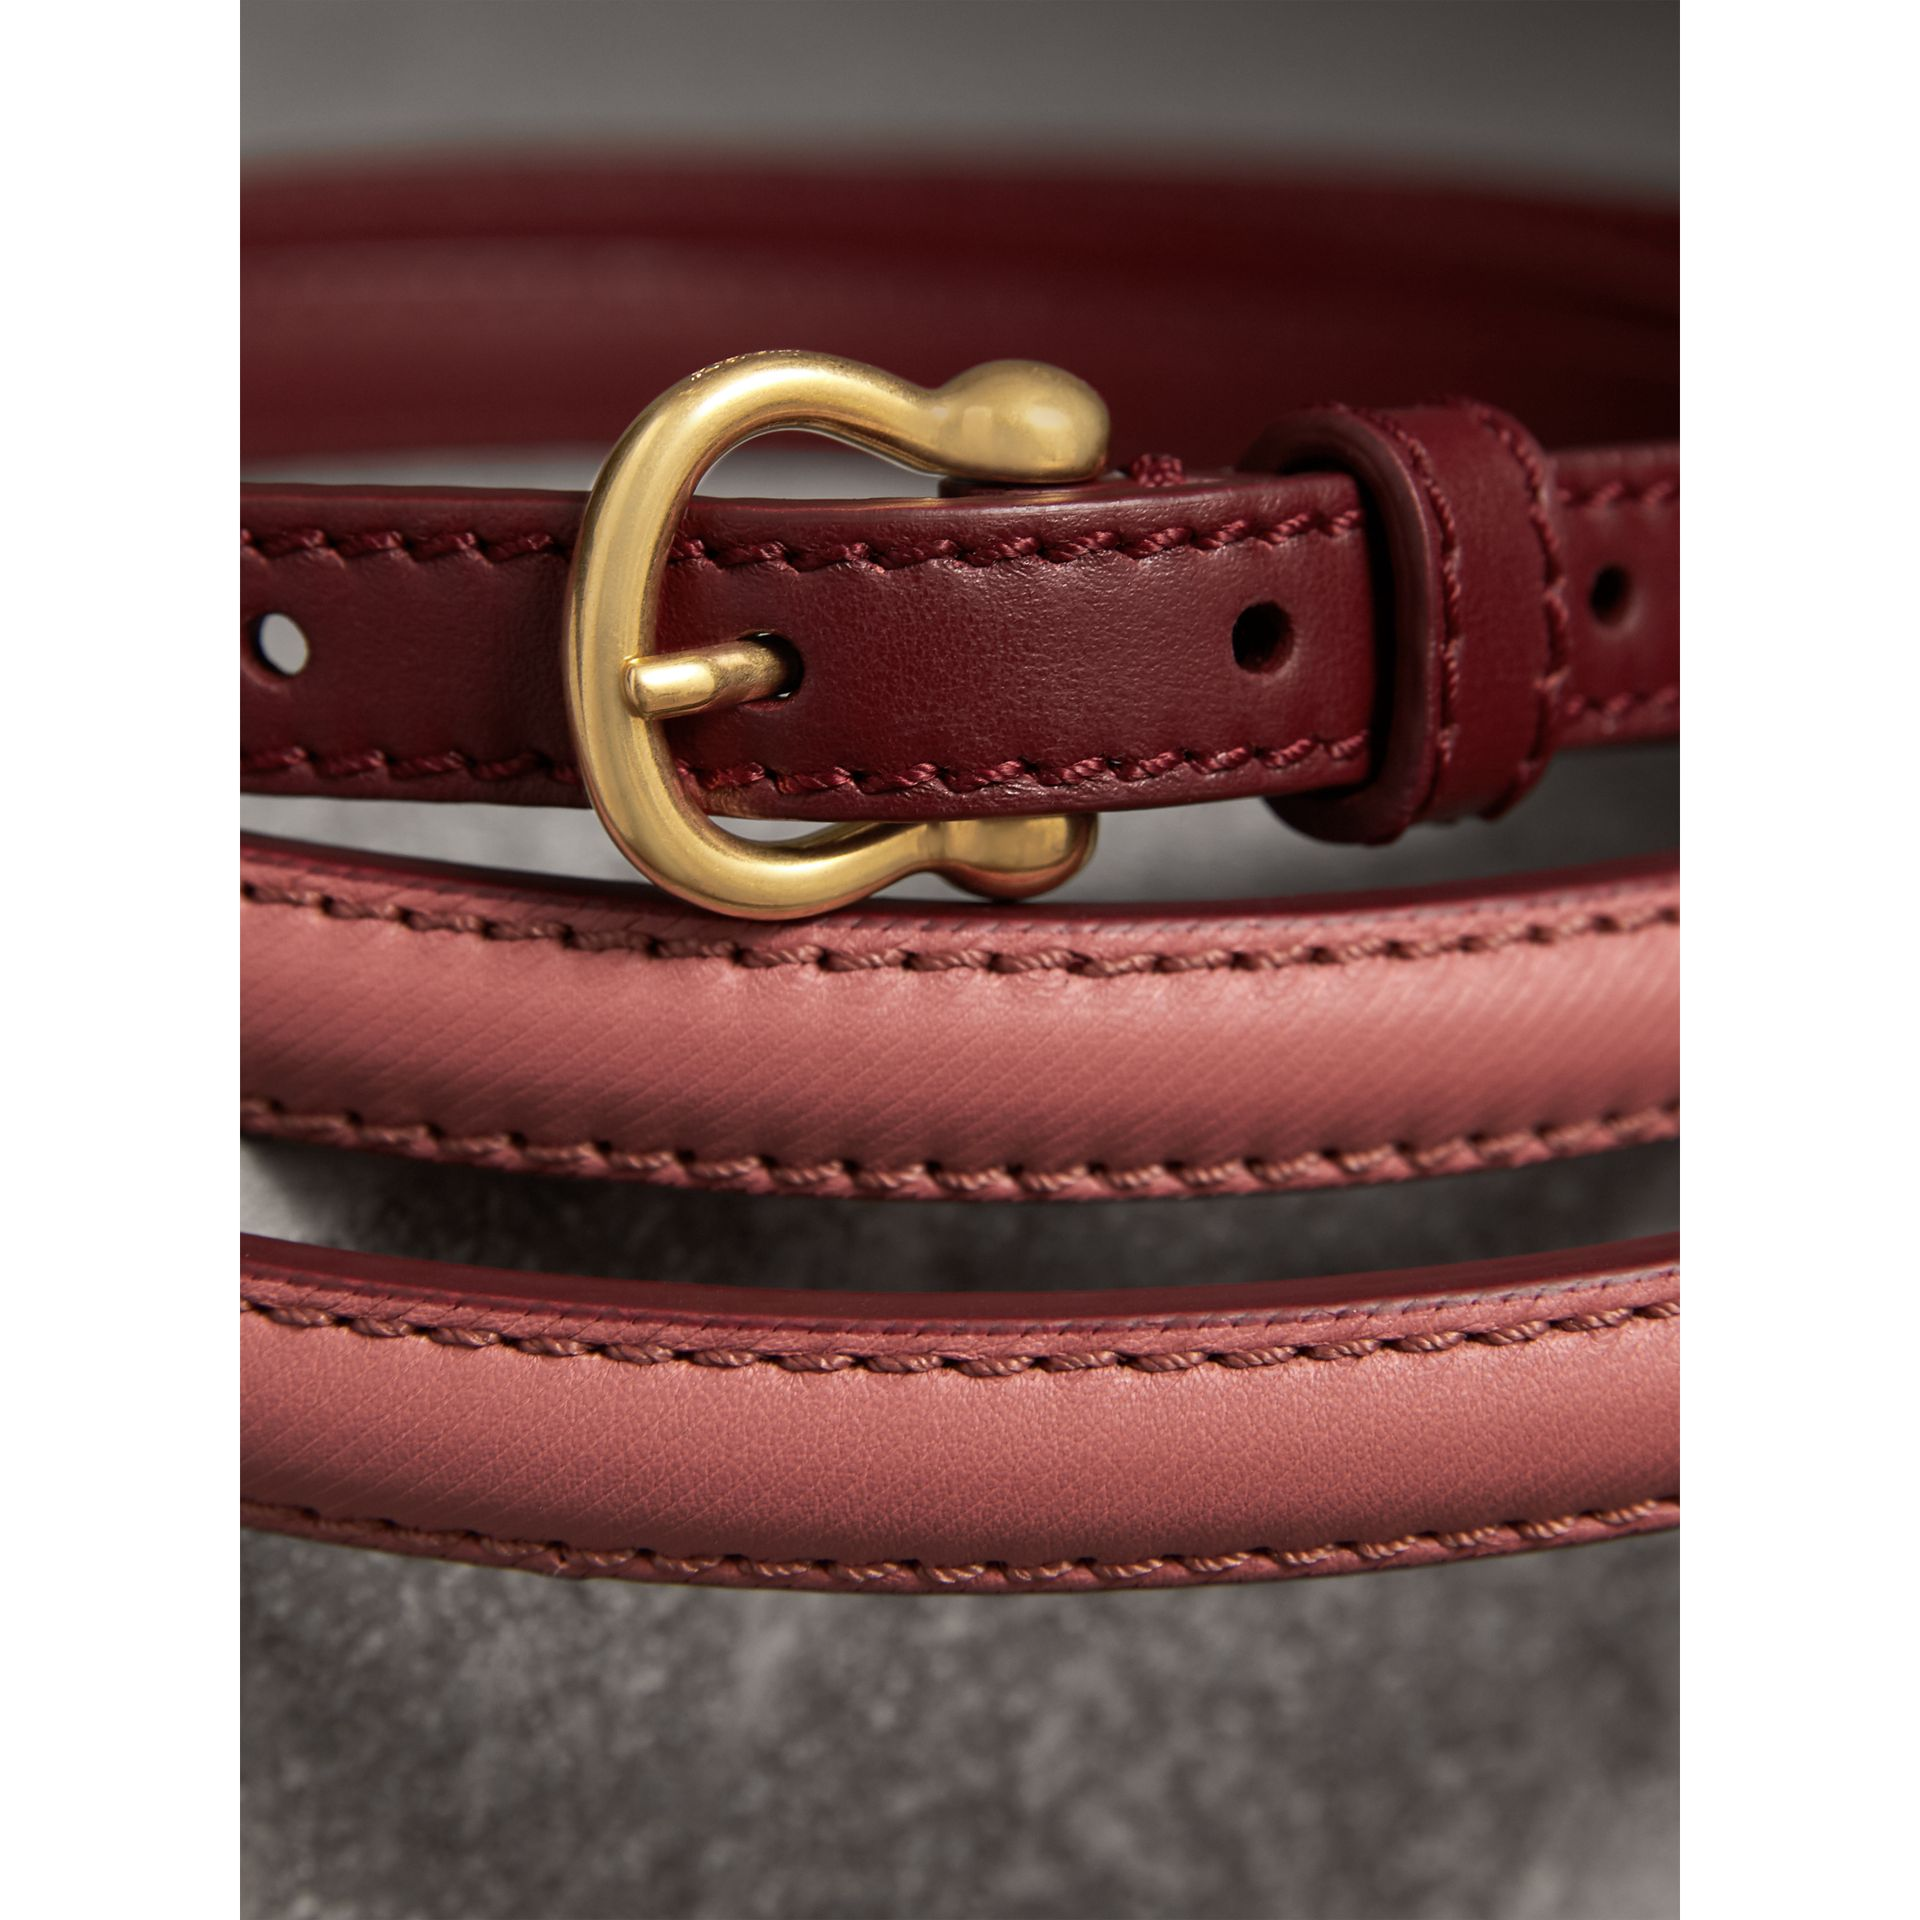 Two-tone Trench Leather Belt in Blossom Pink/ Antique Red - Women | Burberry Australia - gallery image 2